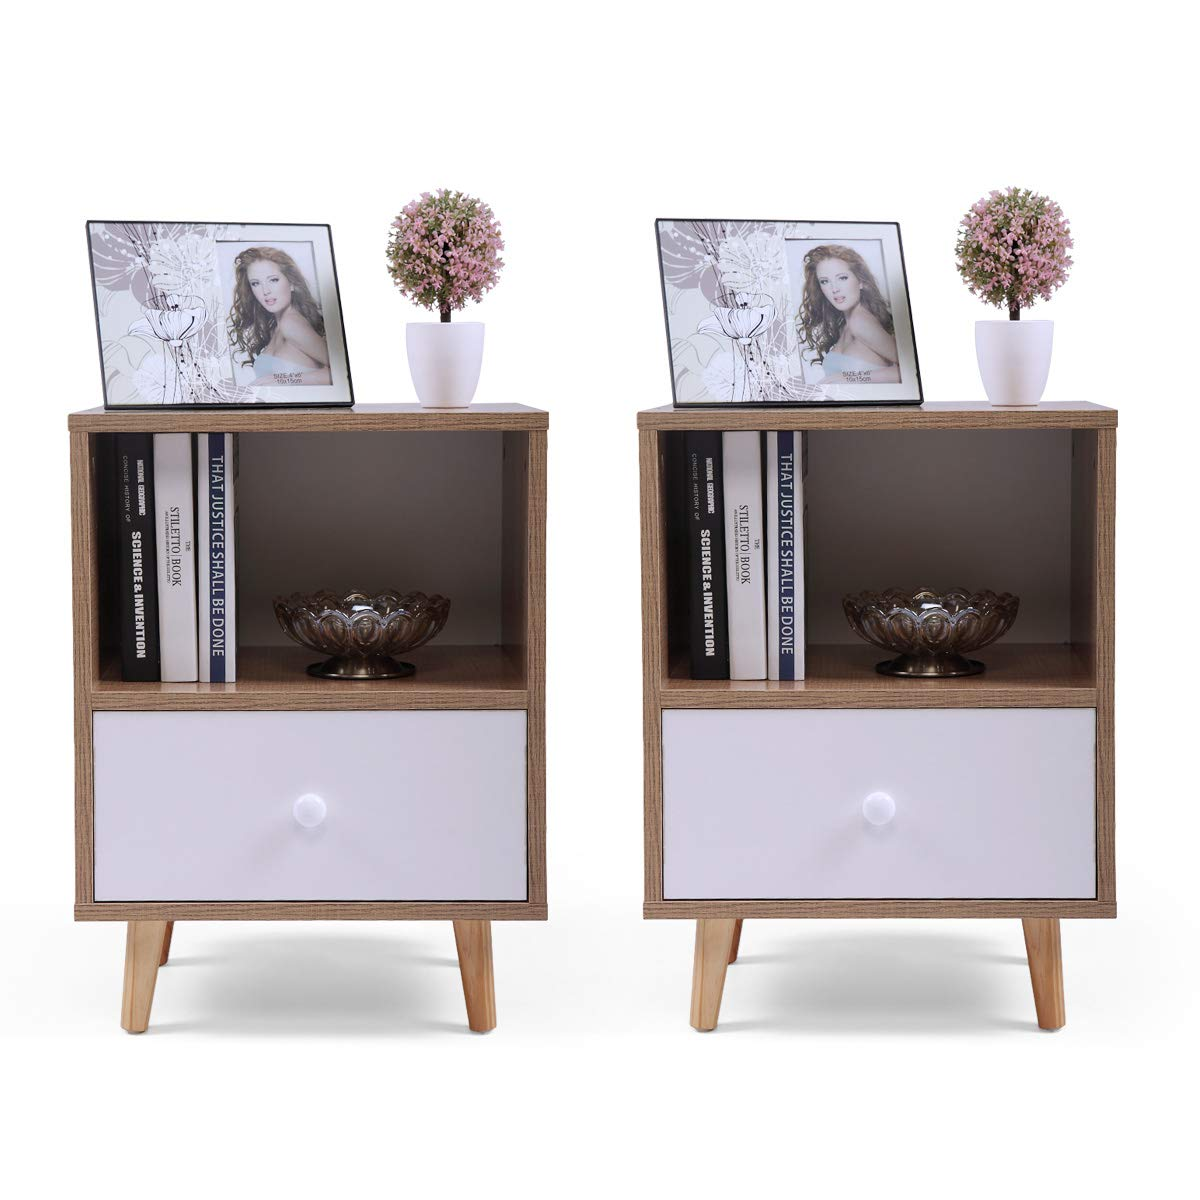 Set of 2 Night Stand 2 Layer w/Drawer Bedside End Table Organizer Bedroom by Betterhomechoice